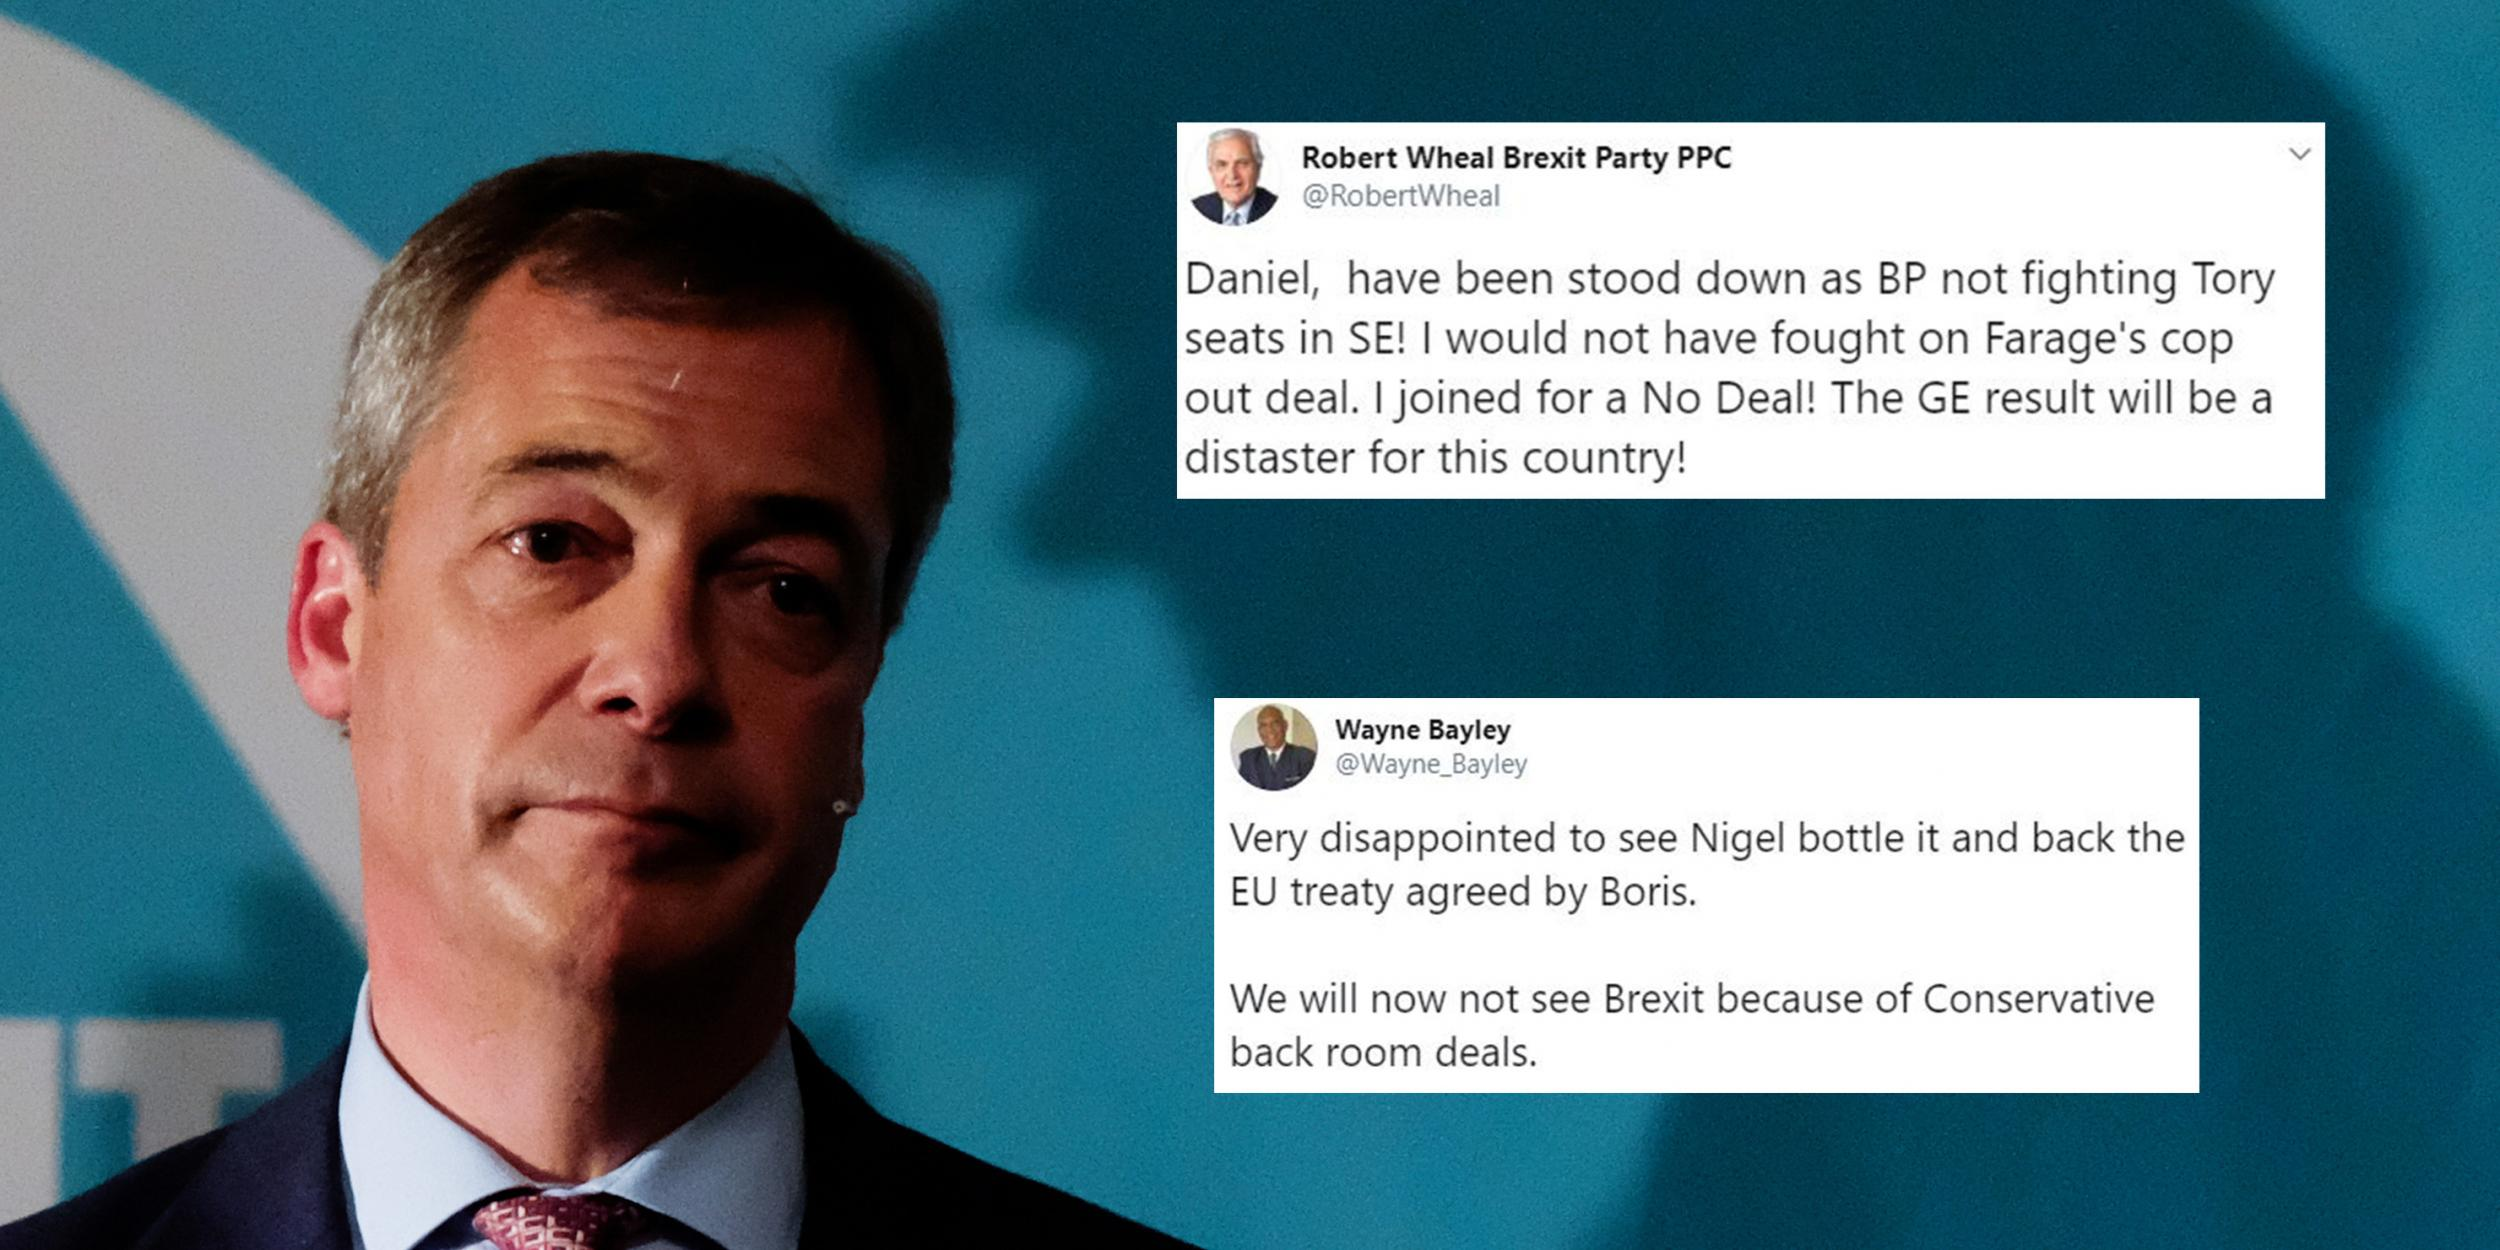 Brexit Party candidates are furious that Nigel Farage has forced them to them stand down